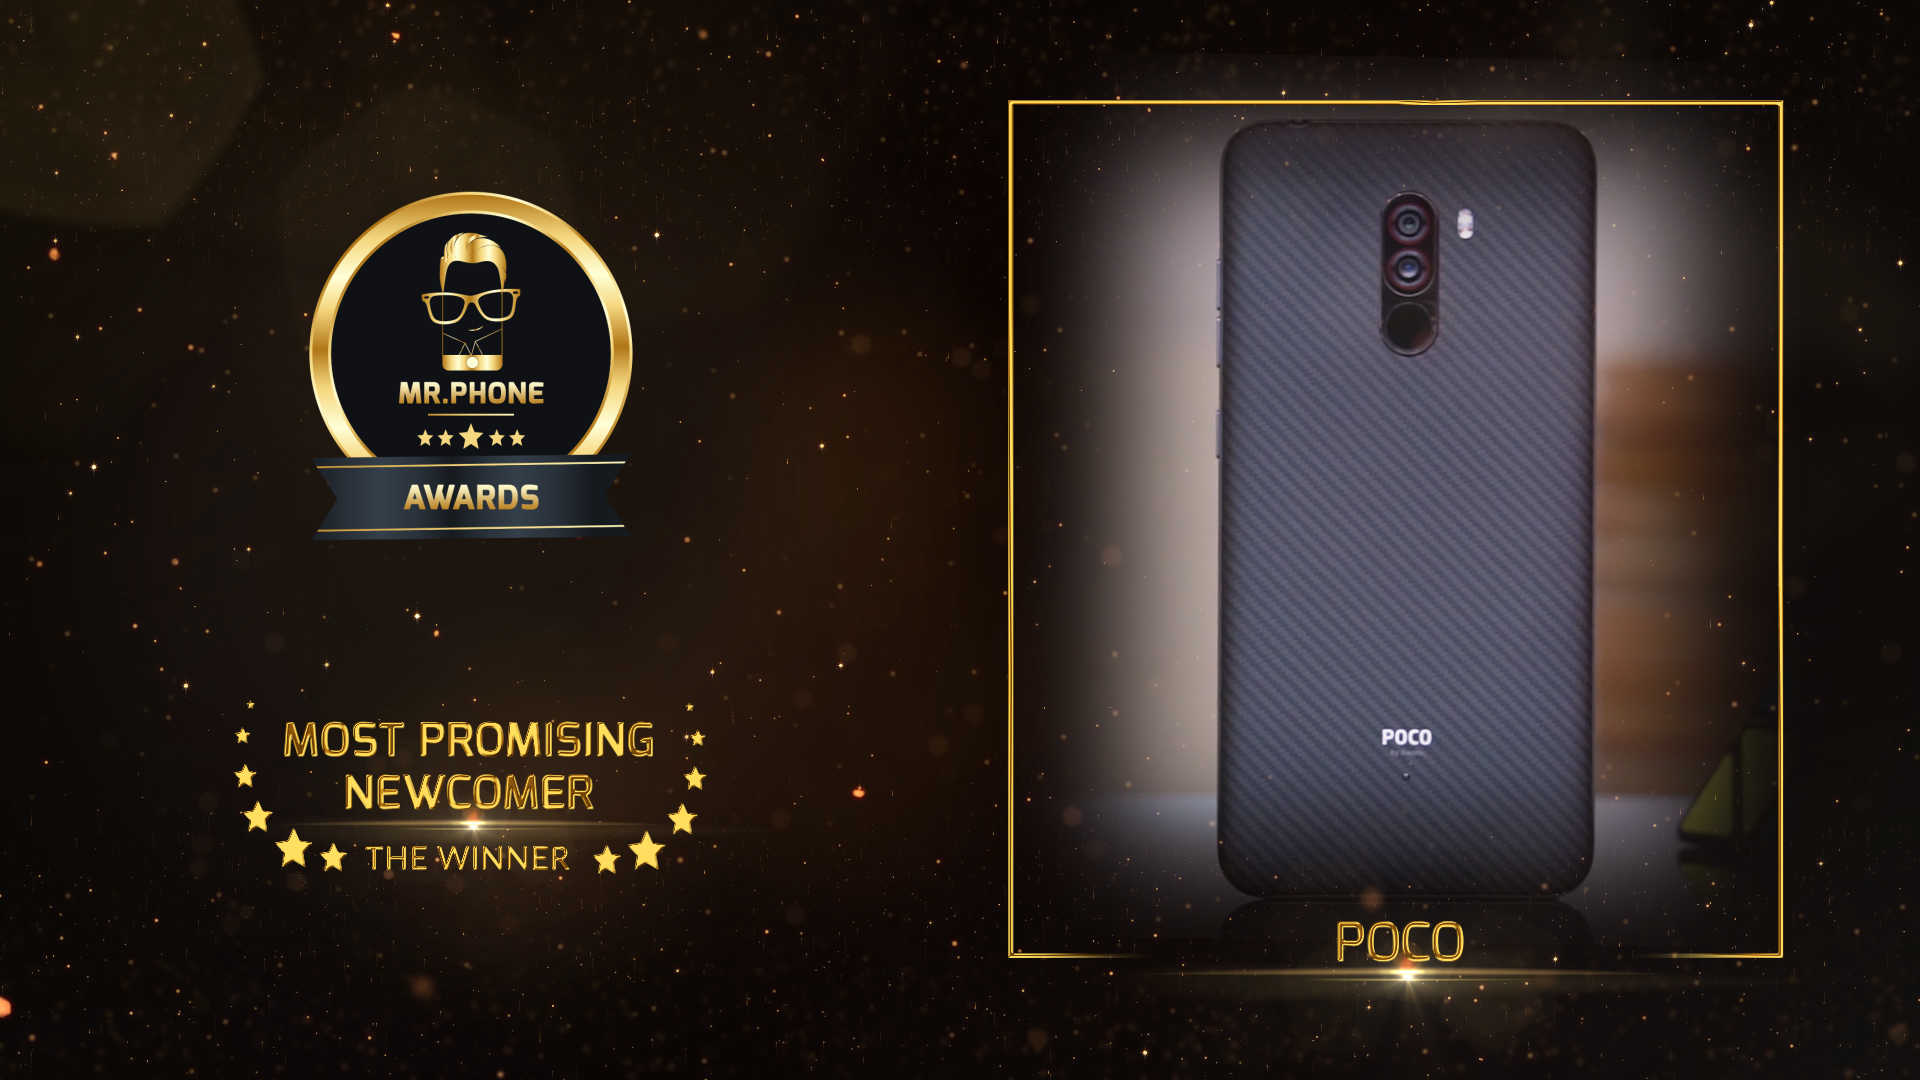 Mr. Phone Best Newcomer 2018 - Poco